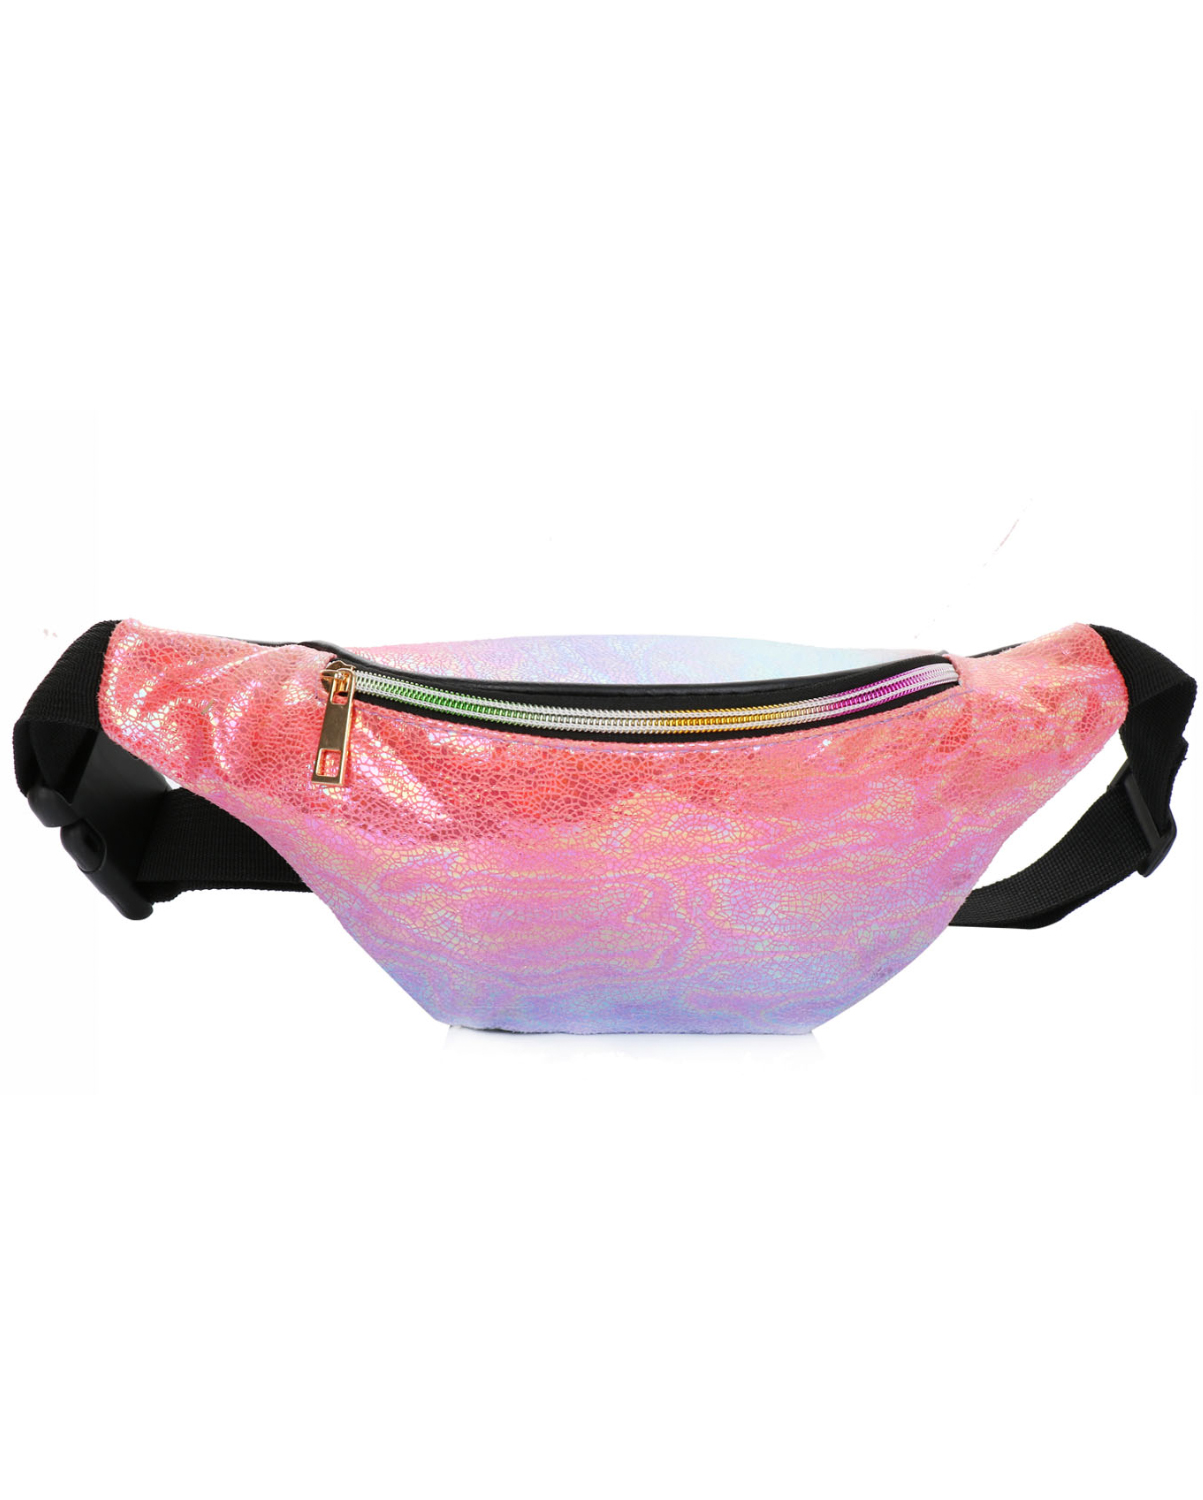 AO865(PK)-wholesale-fanny-pack-pattern-glossy-texture-pvc-polyester-material-faux-leather(0).jpg